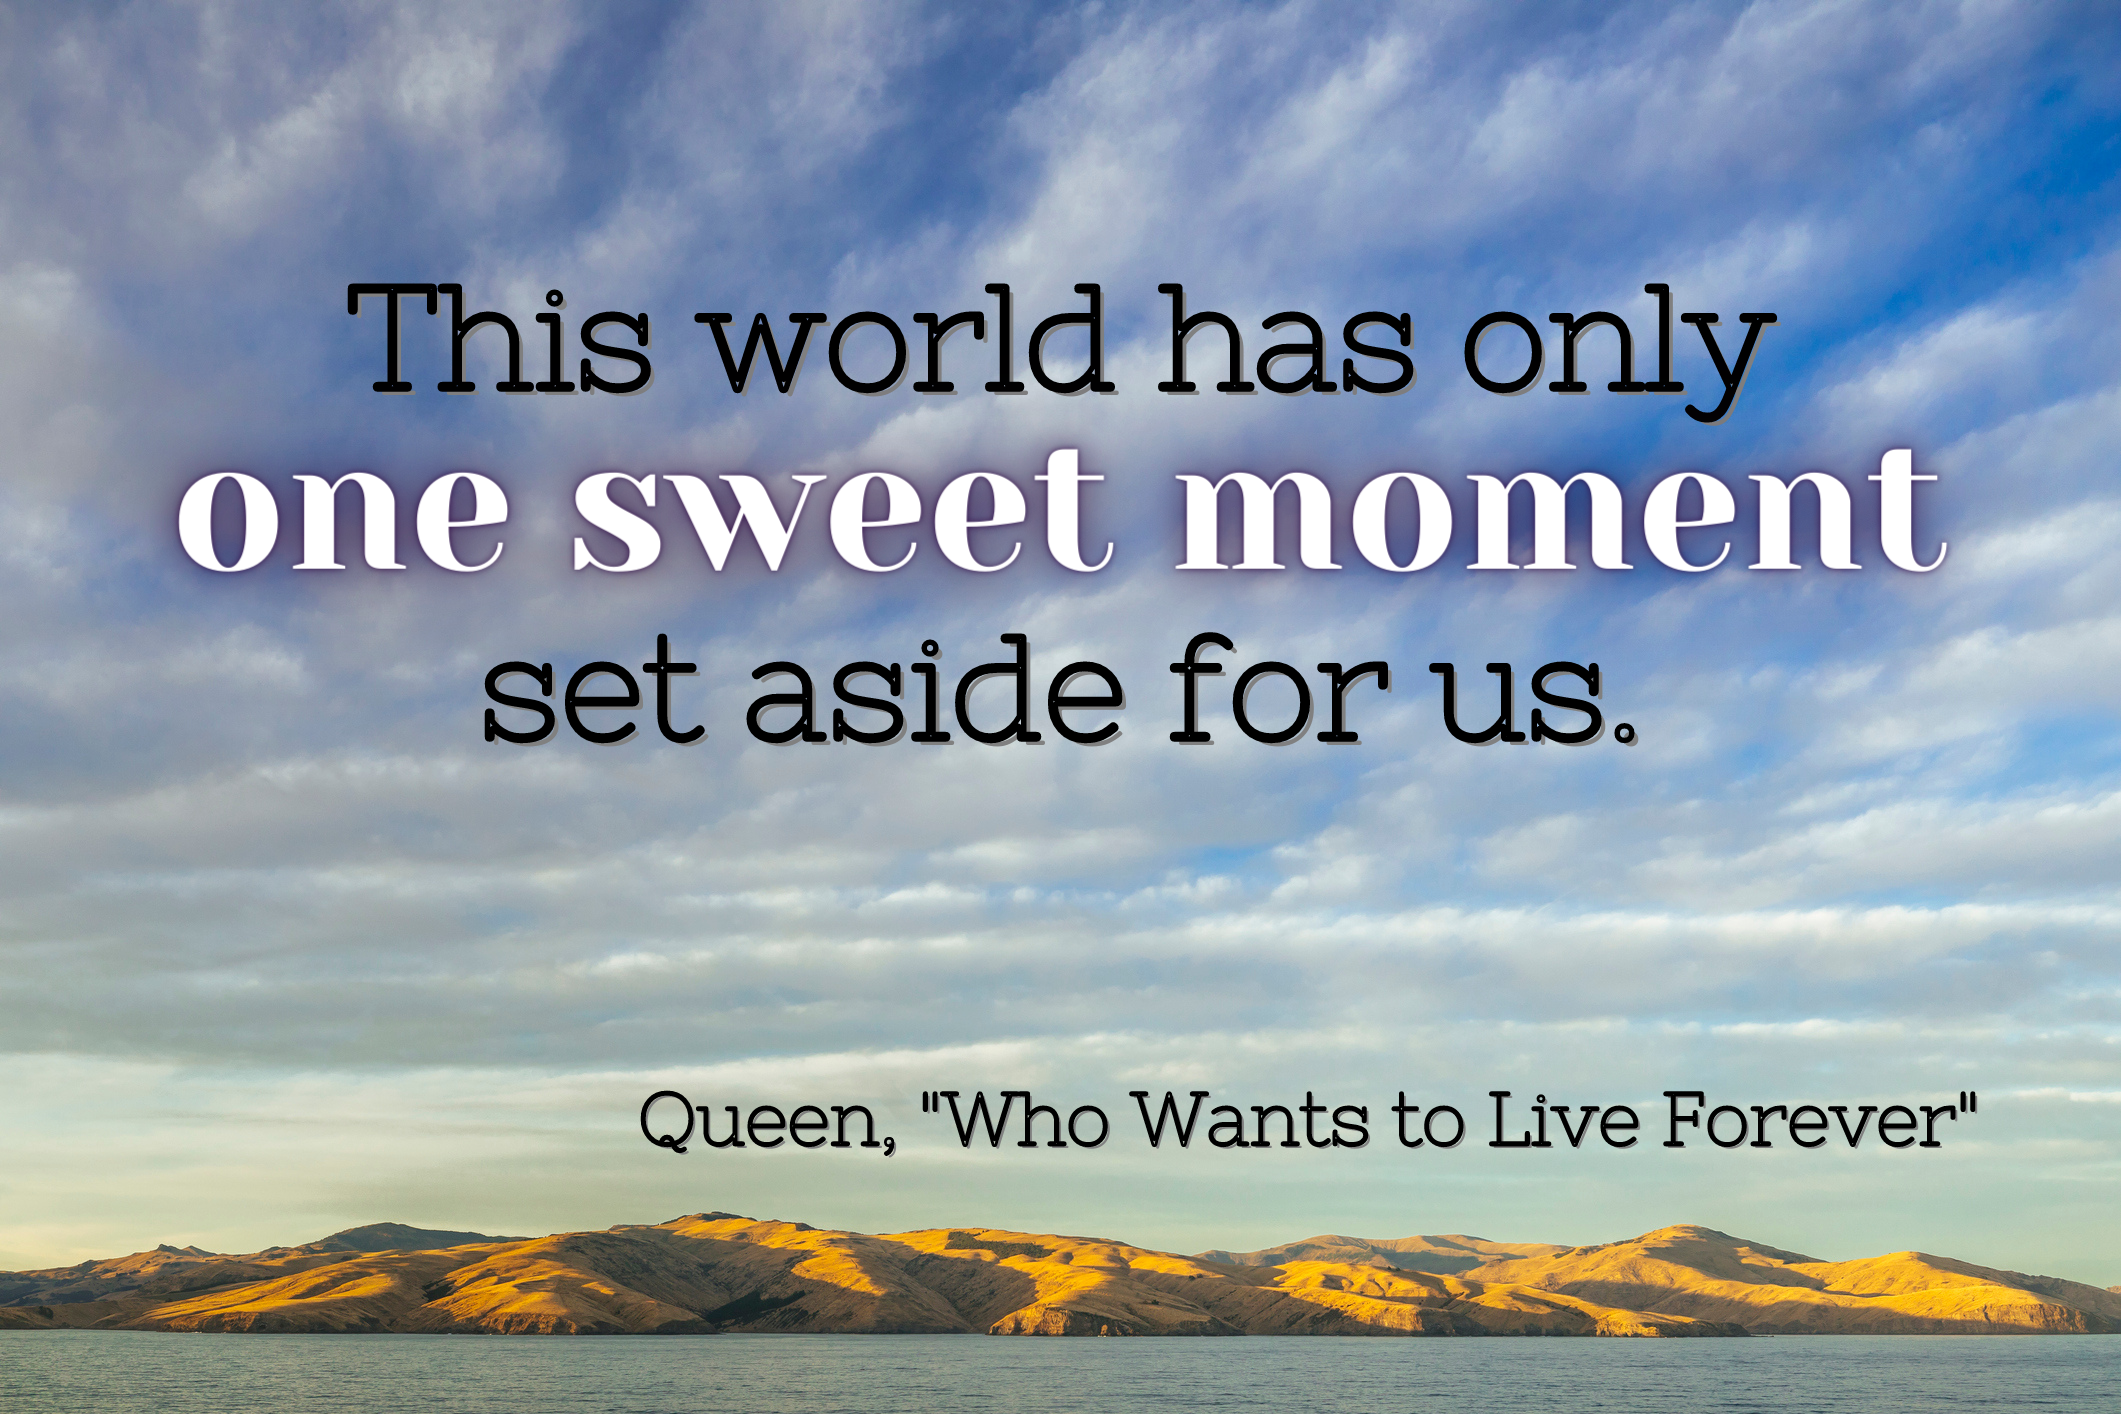 """""""This world has only one sweet moment set aside for us"""" by Queen over the sky and hills"""